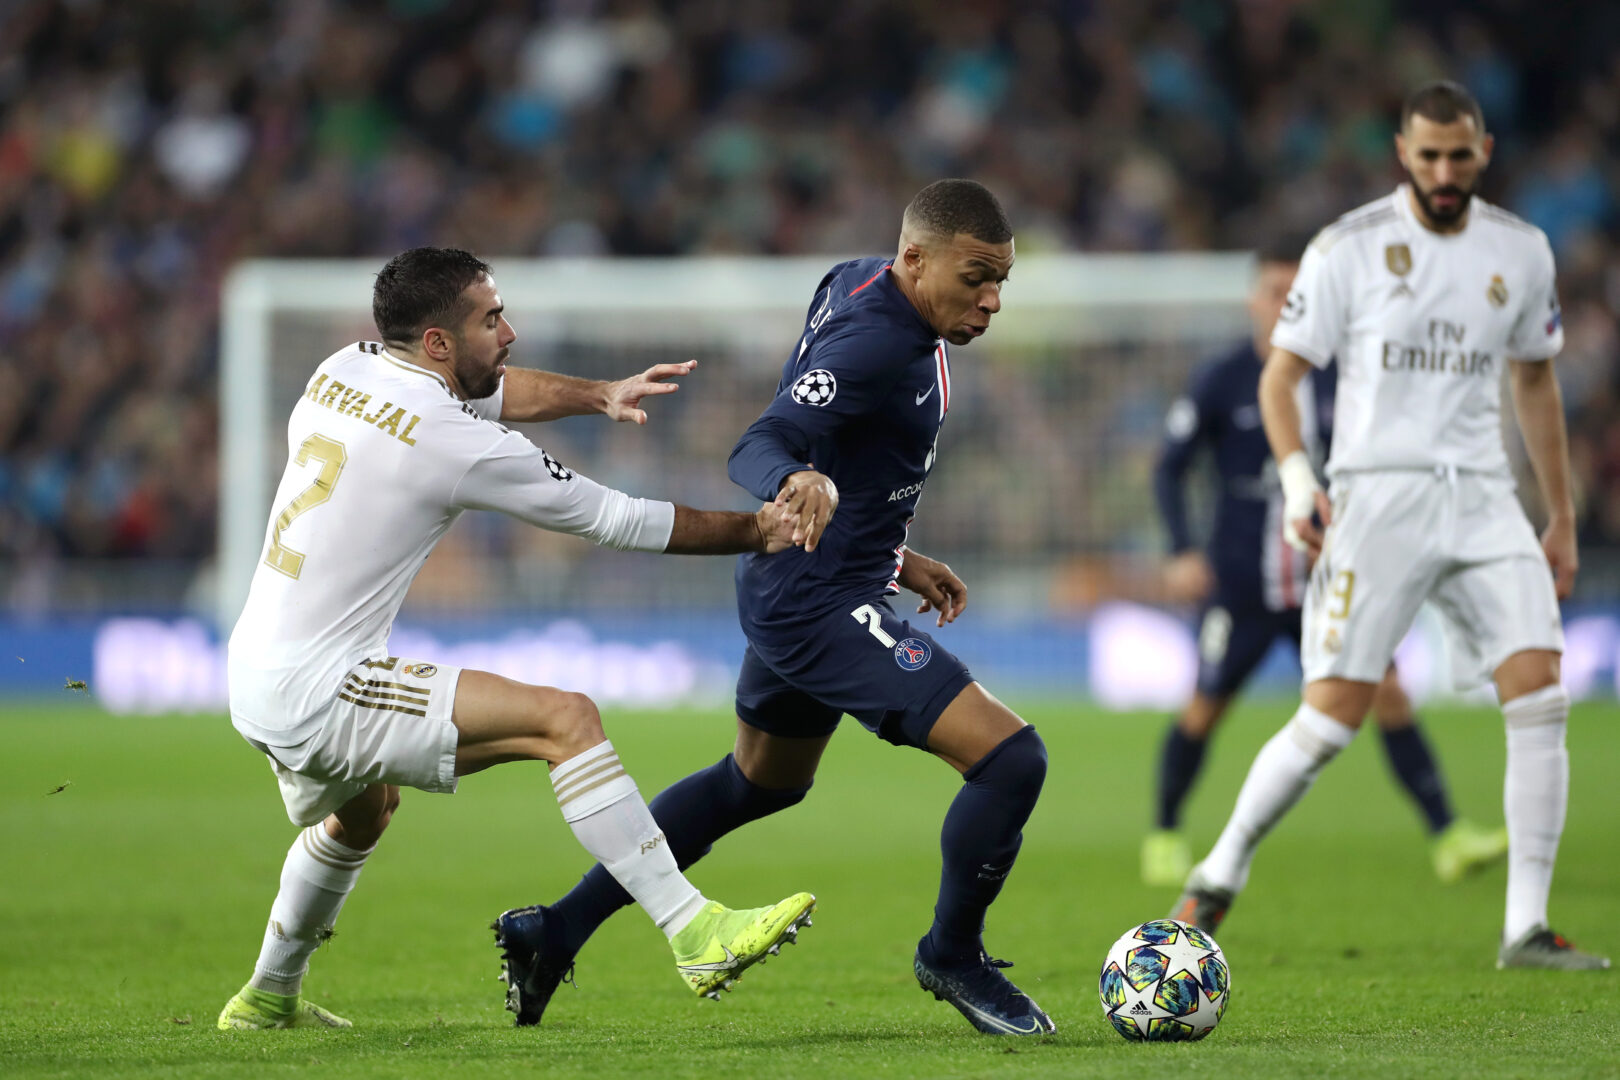 Kylian Mbappé im Duell mit Real Madrid.